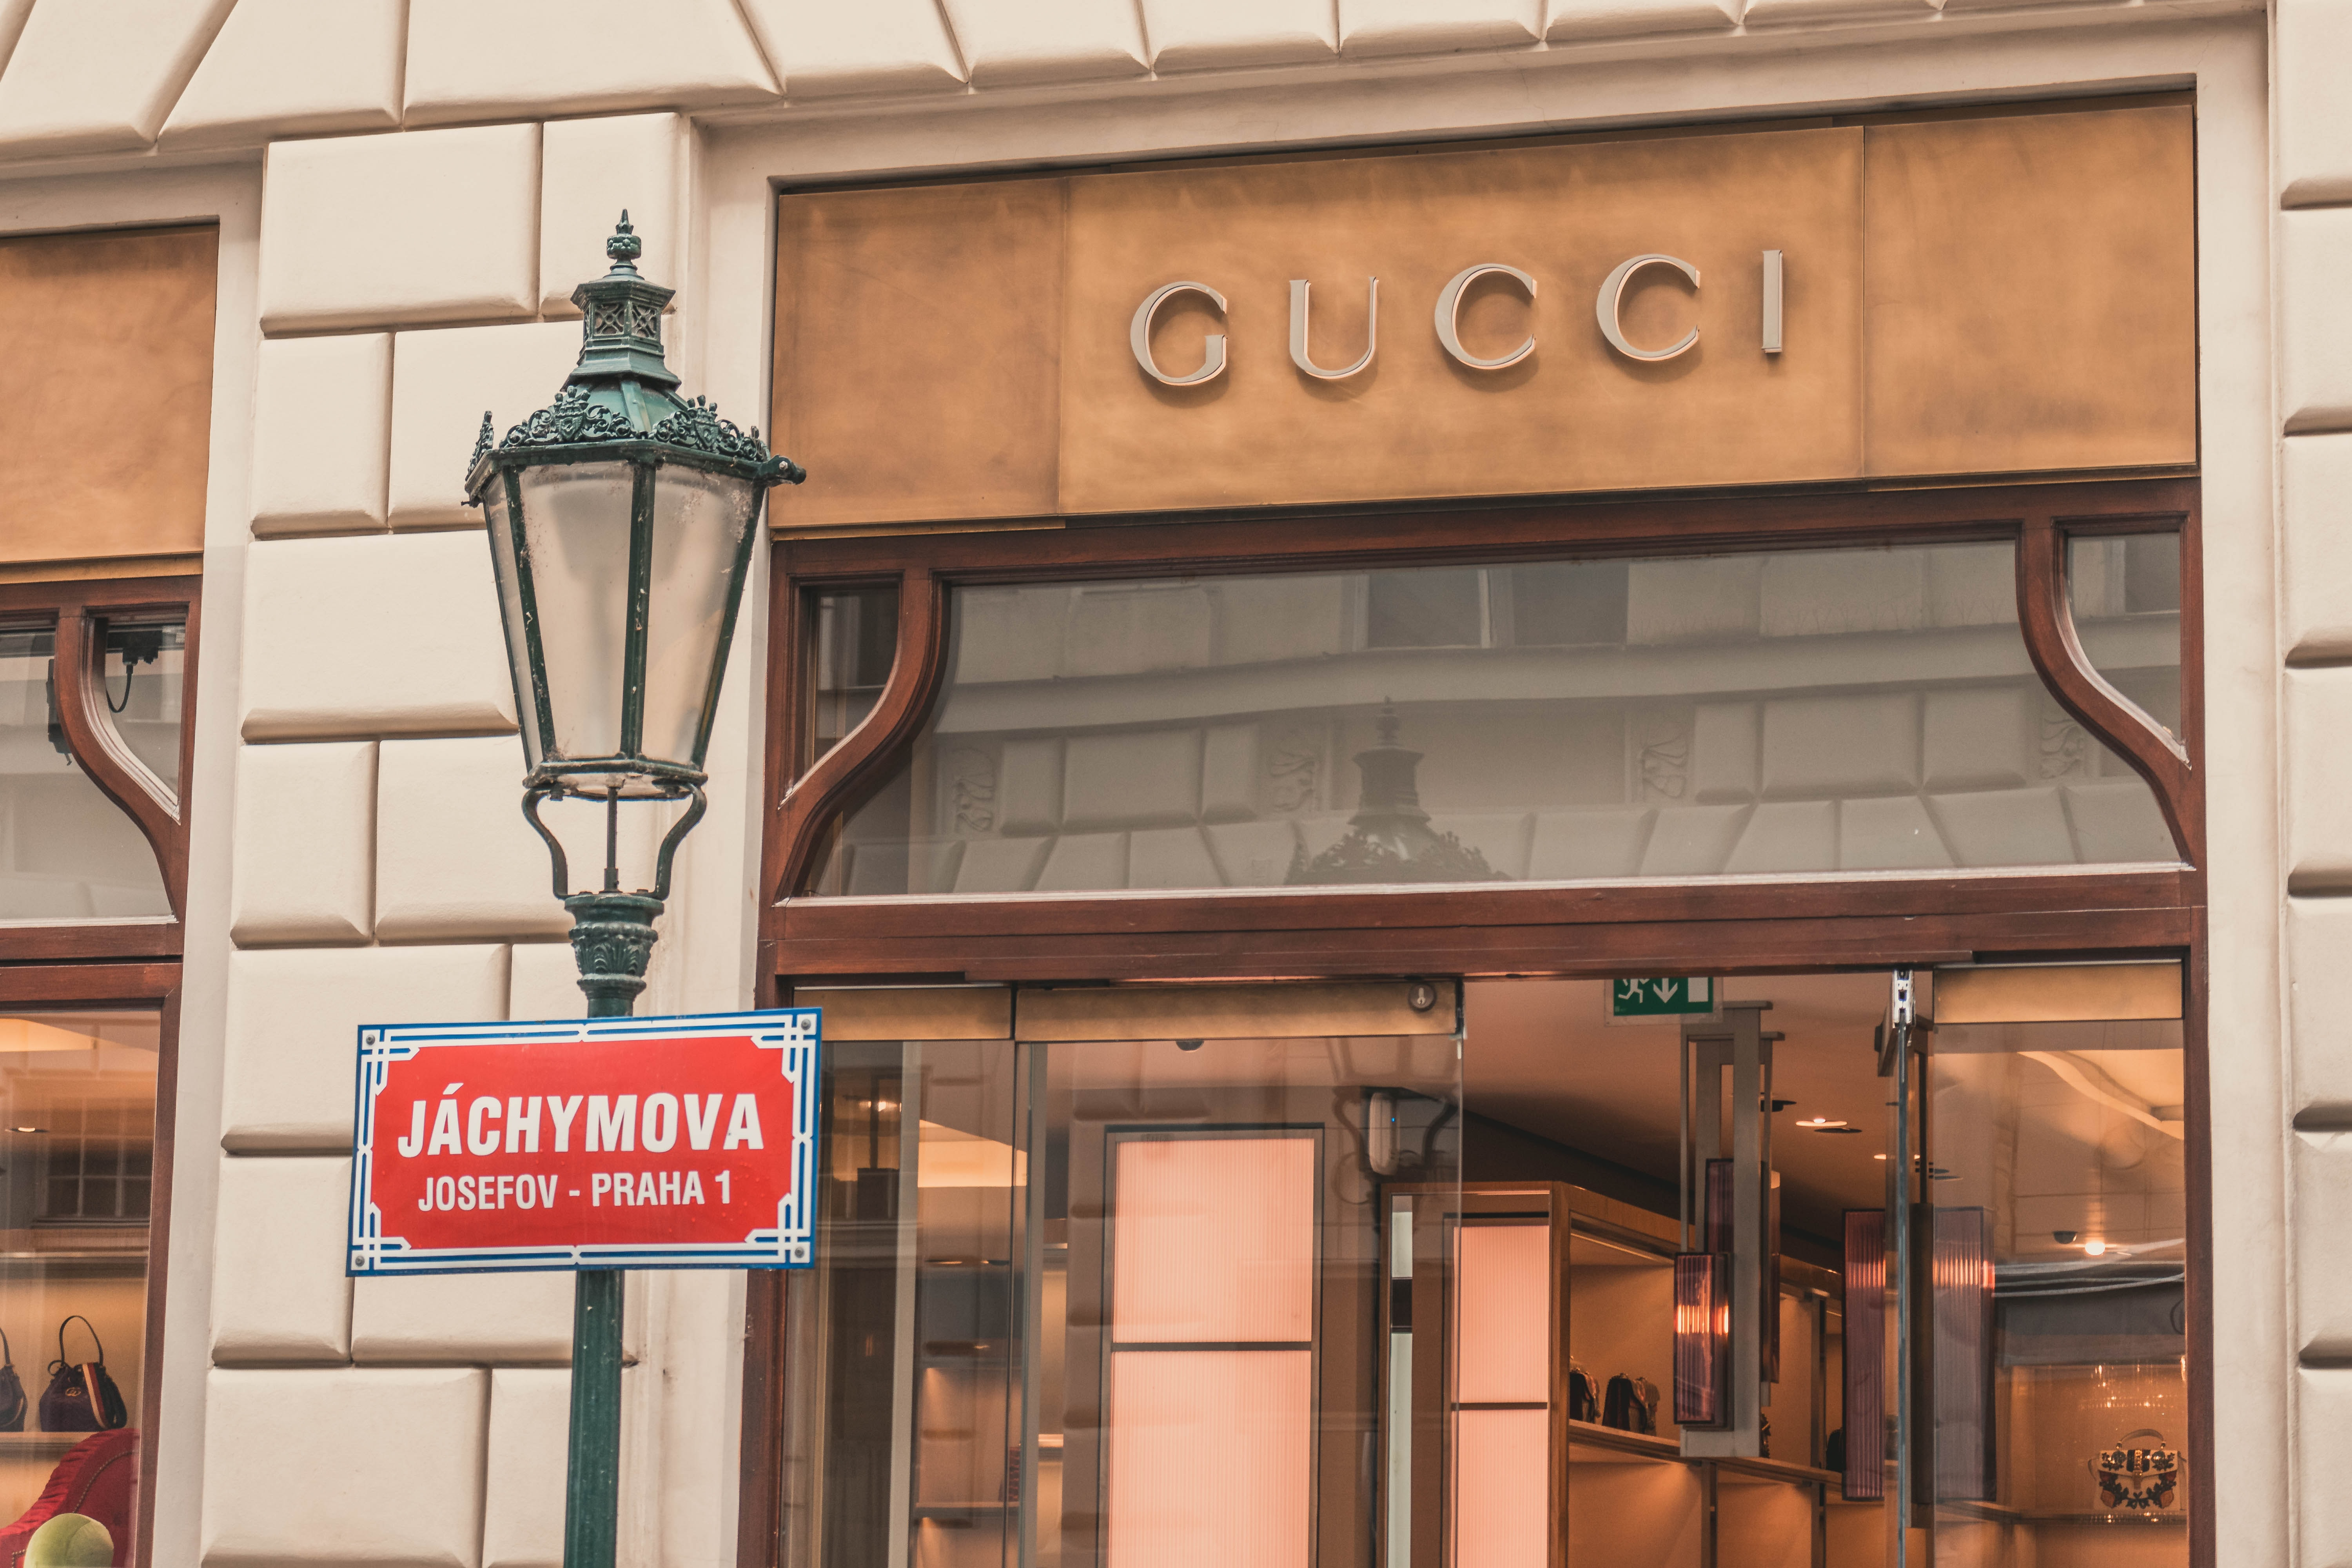 light sconce beside Gucci building signage at daytime